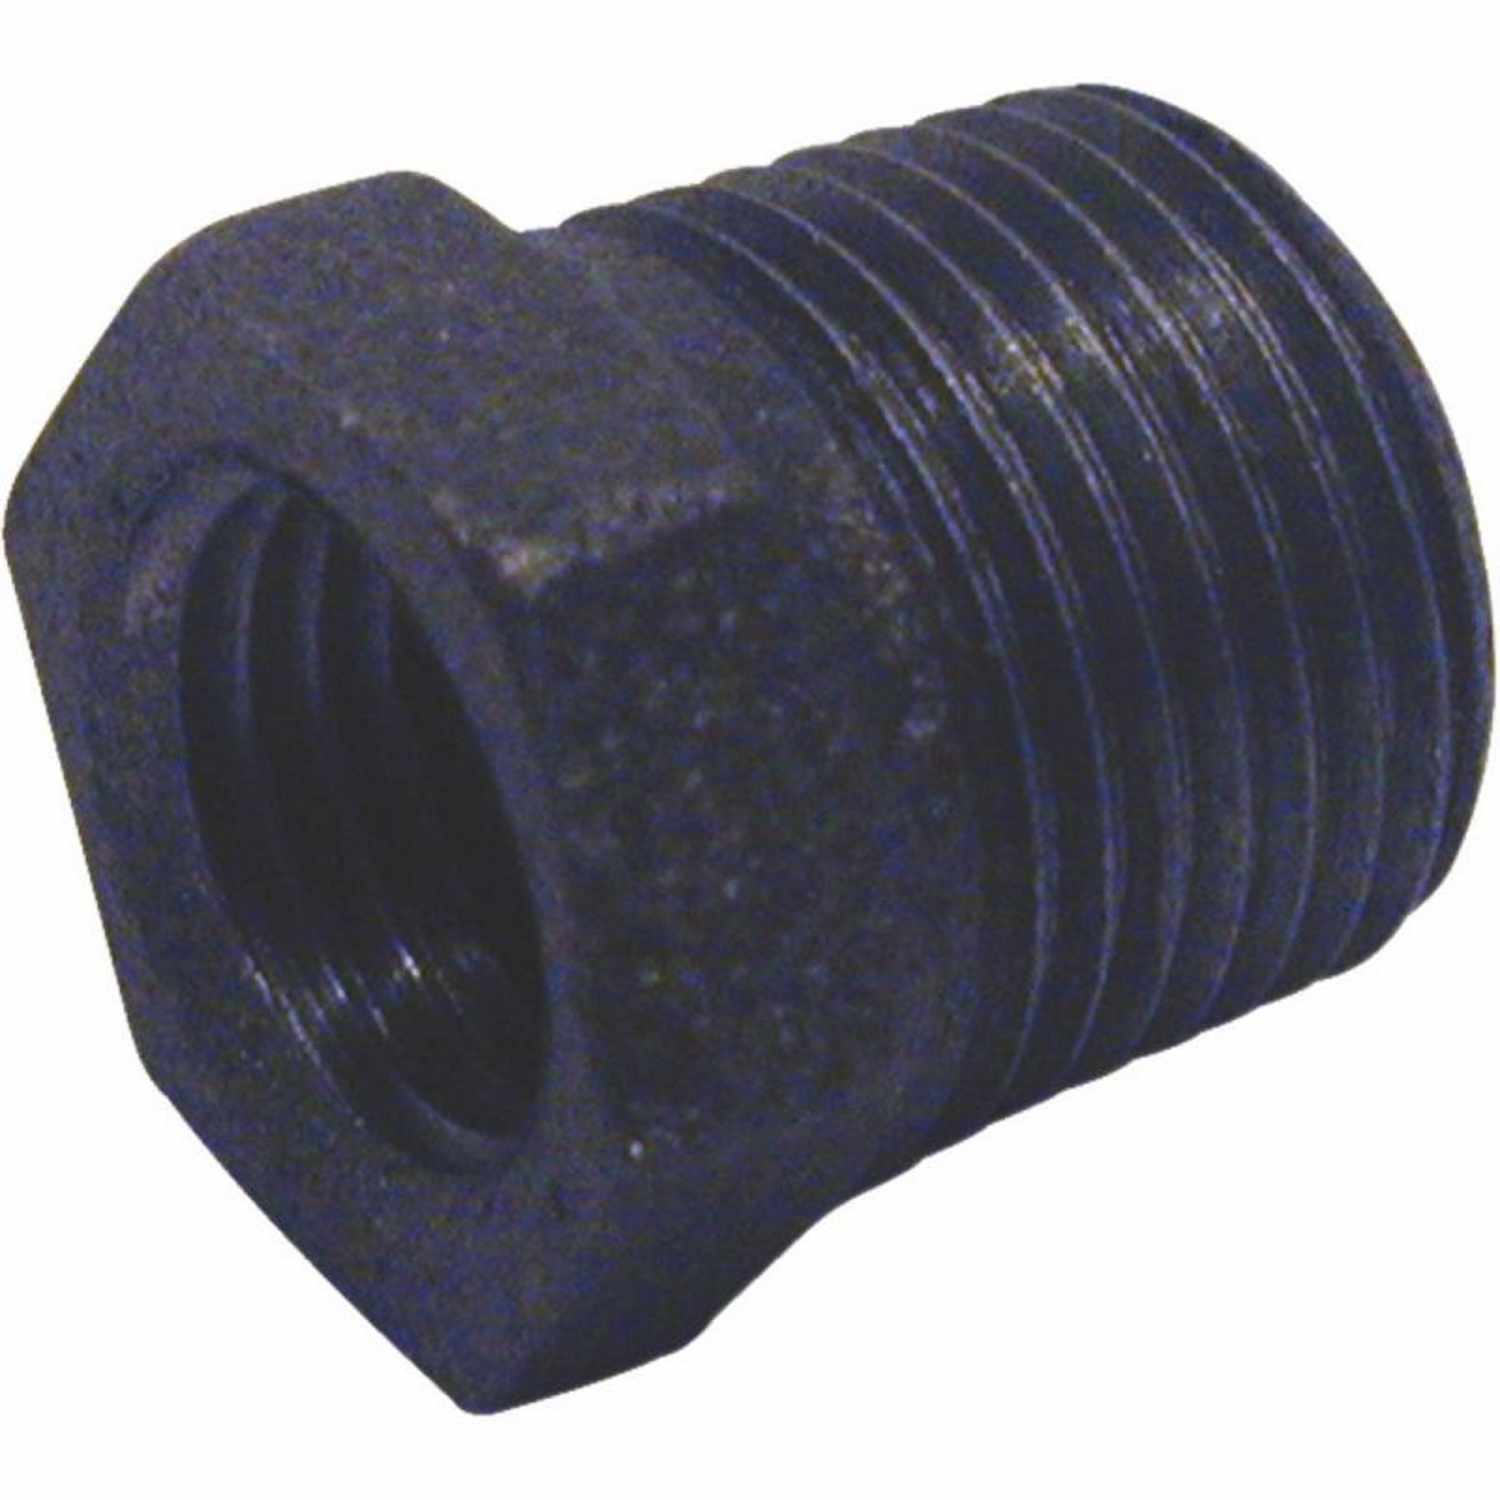 B & K  1 in. MPT   x 3/4 in. Dia. FPT  Black  Malleable Iron  Hex Bushing